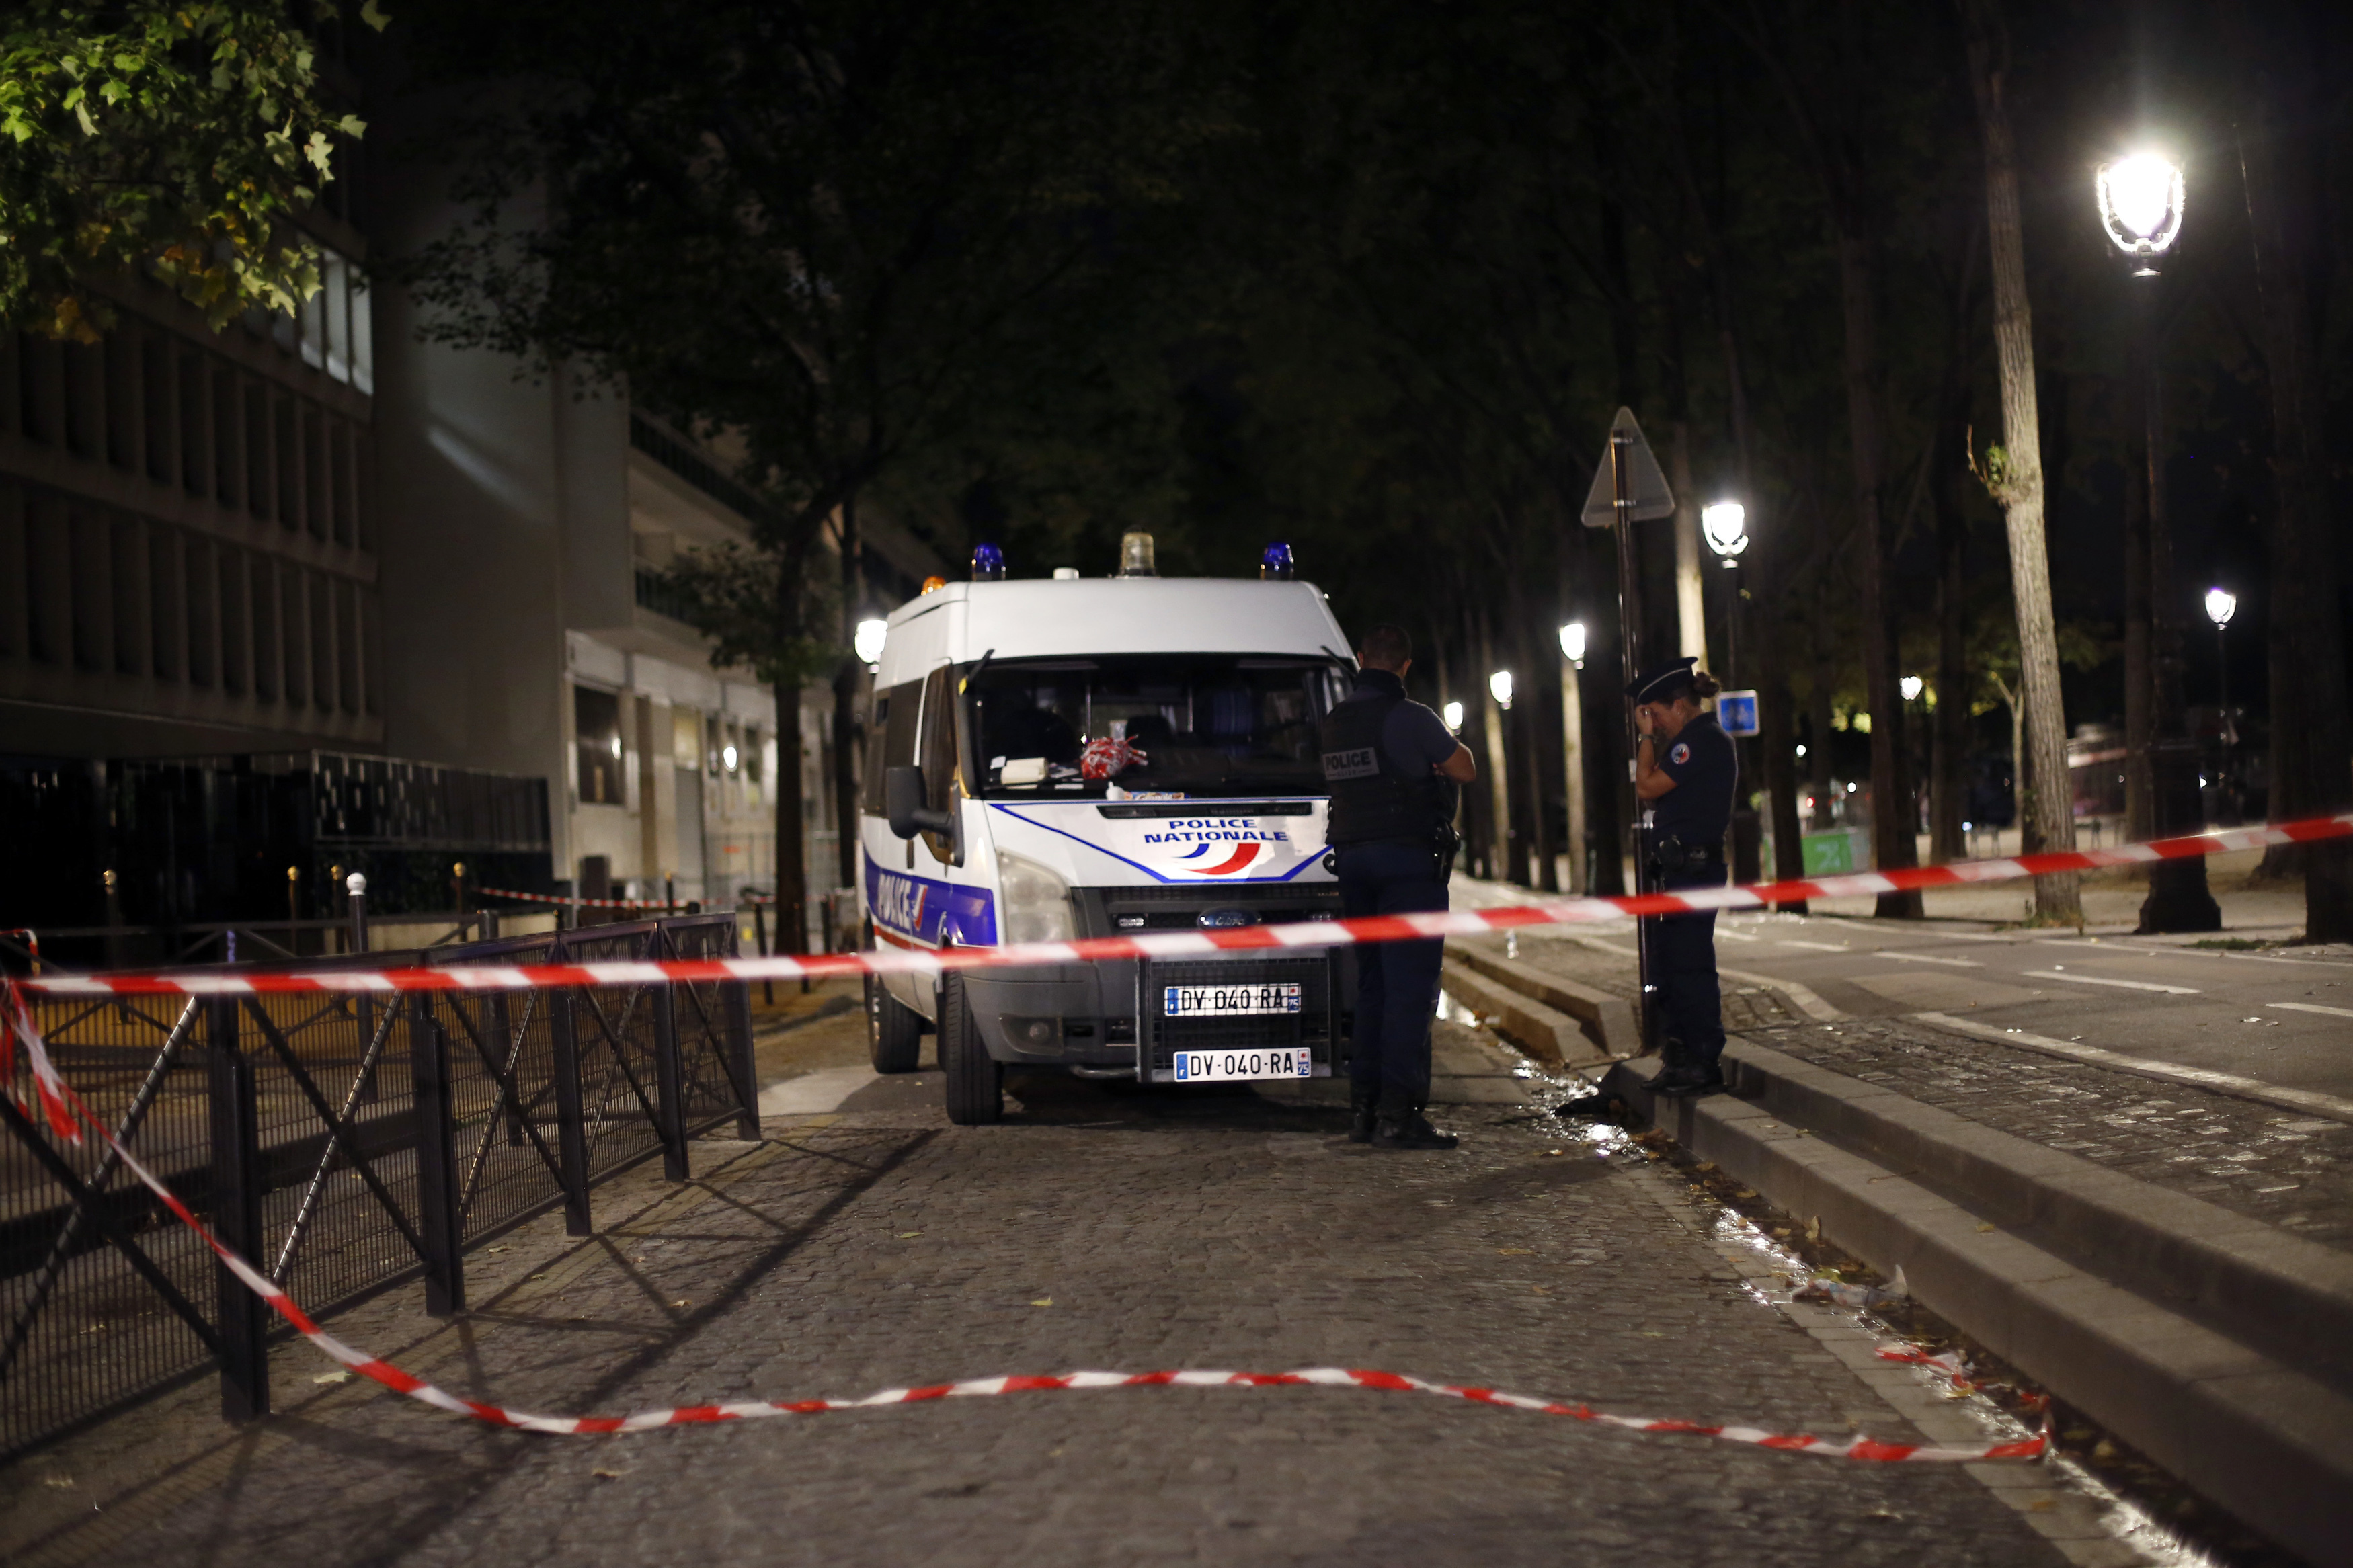 Paris Knife Attack : 7 British tourists injured, Afghan national taken into custody